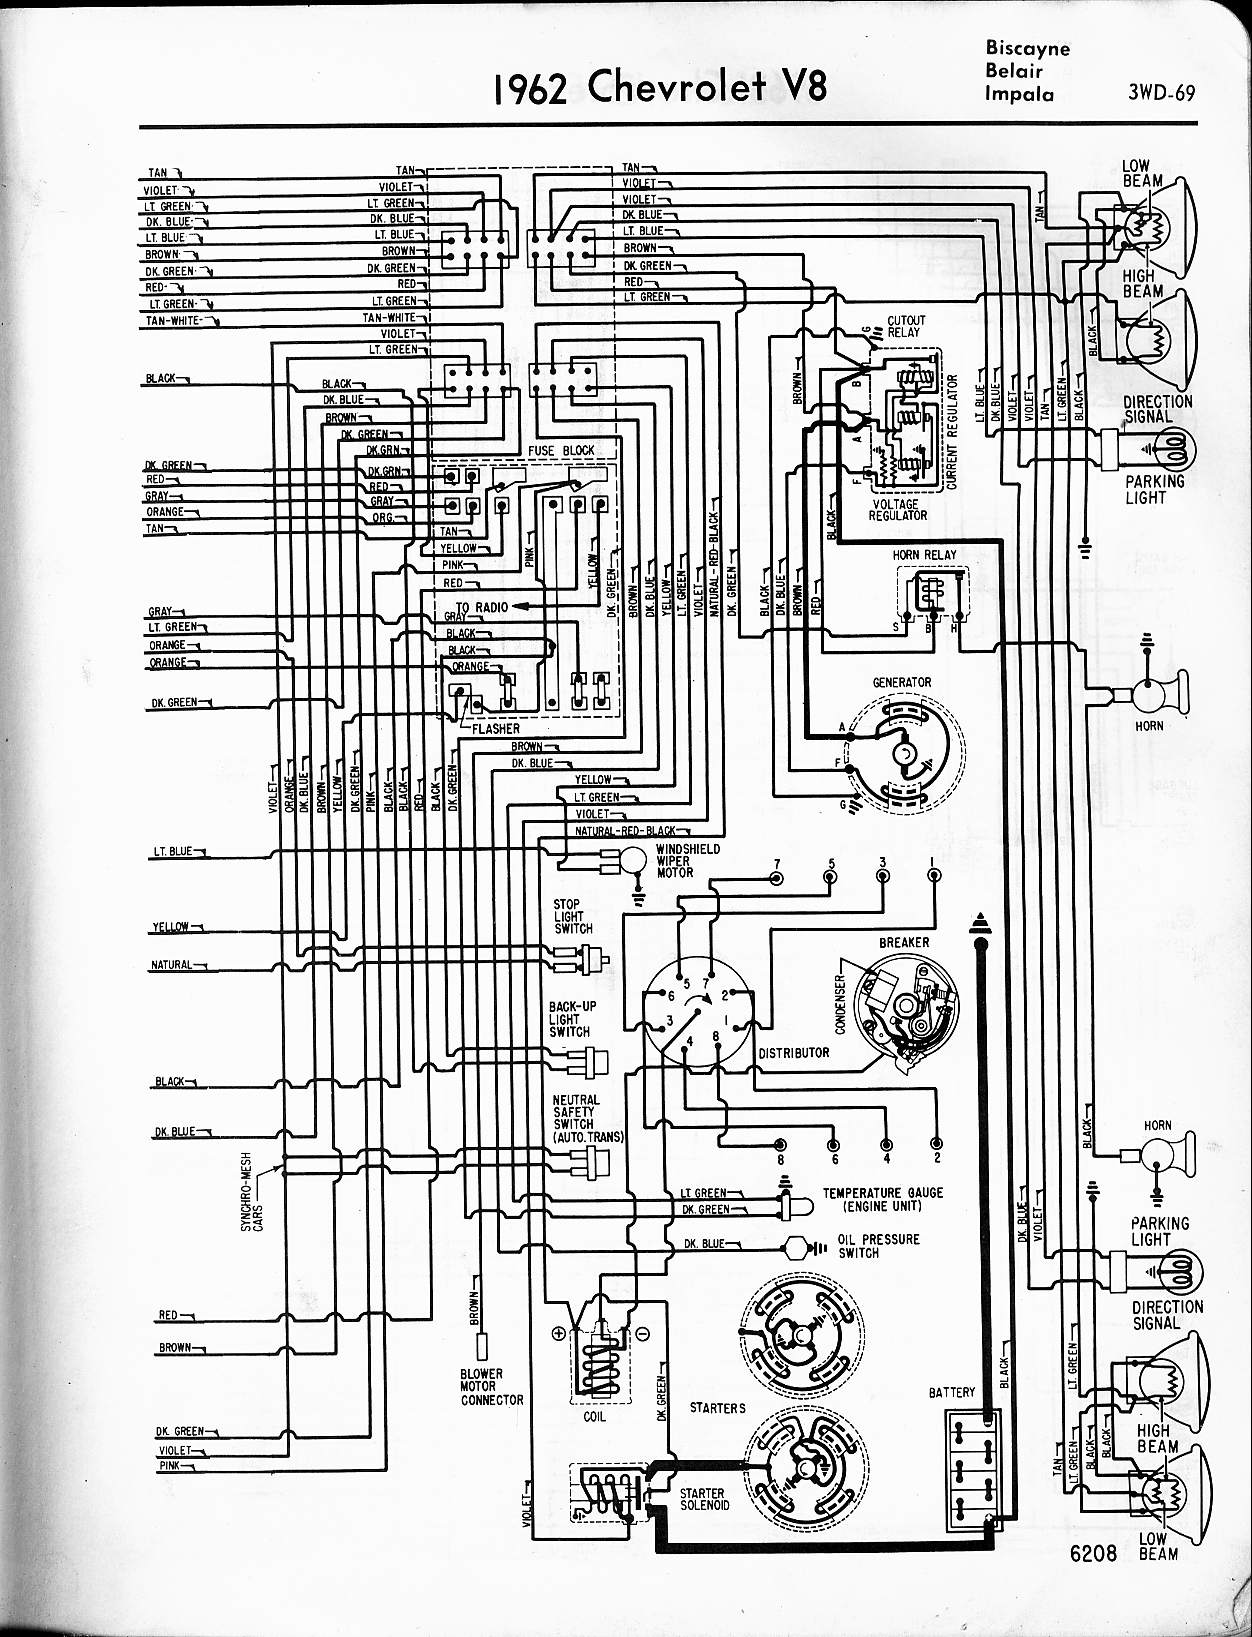 57 65 chevy wiring diagrams 1957 chevrolet steering column wiring diagram #8